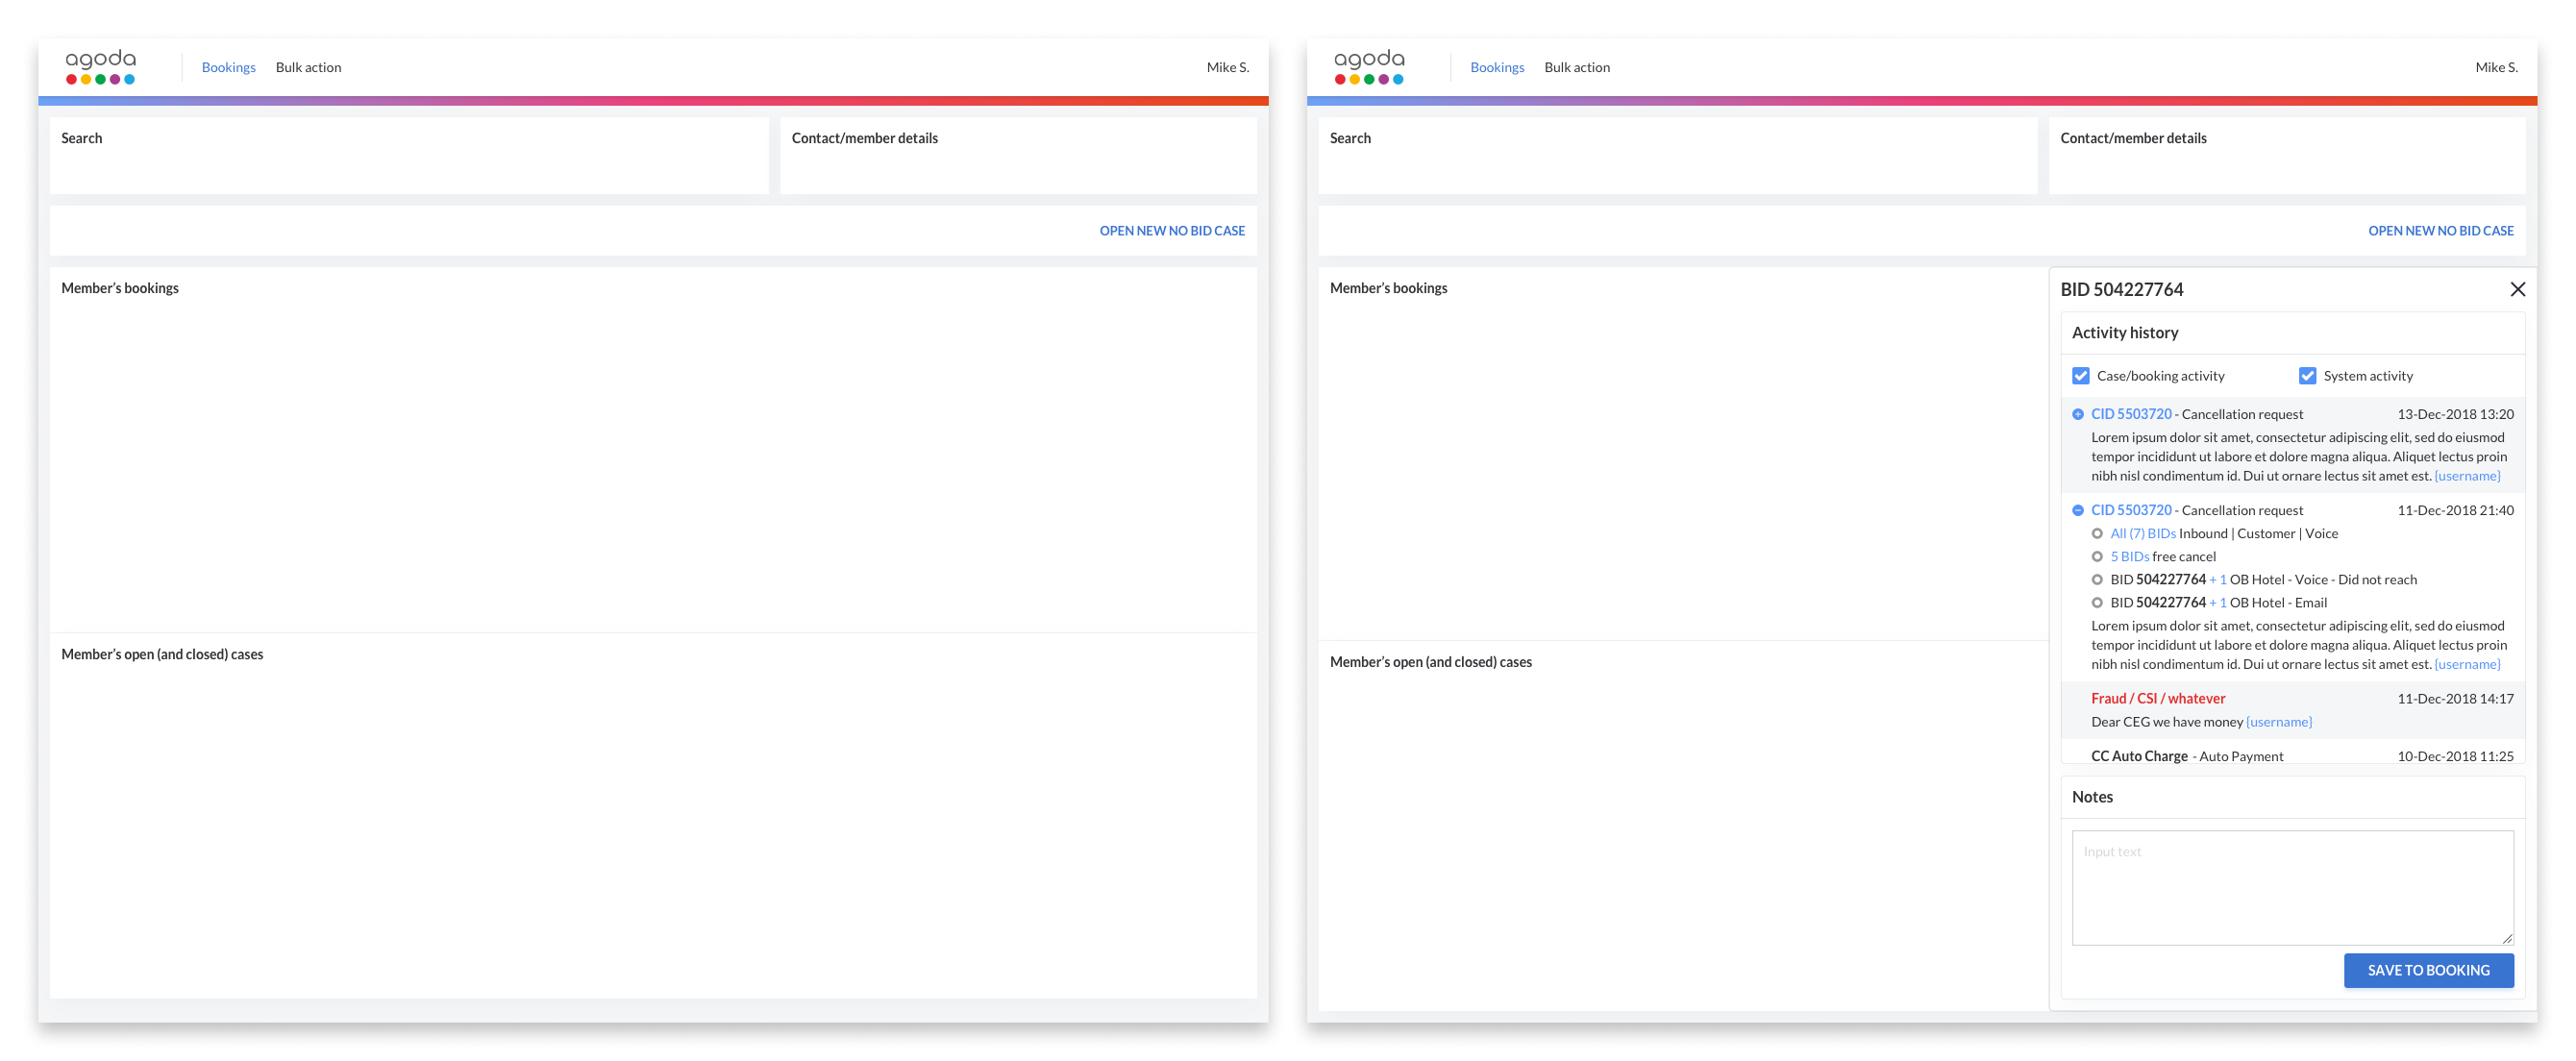 Additional examples of lo-fi wireframes